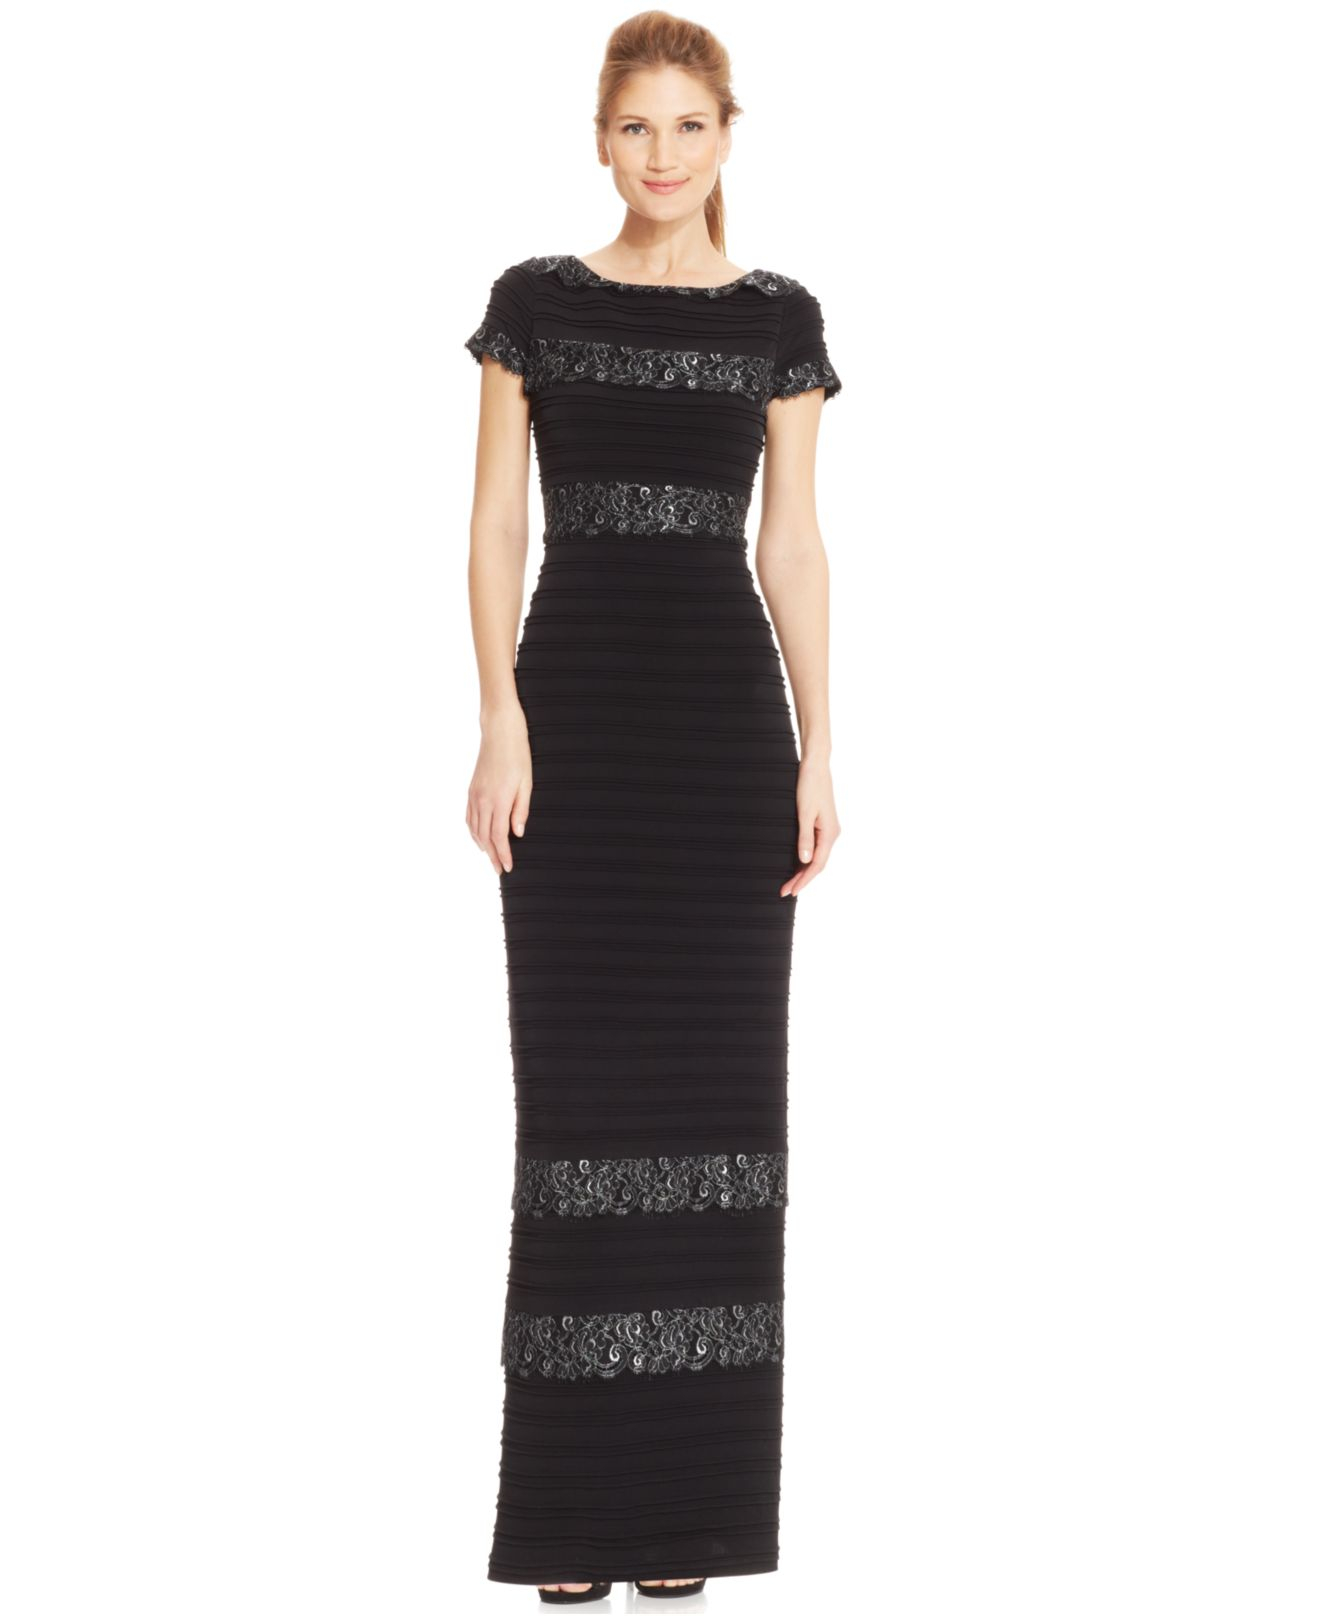 Calvin klein Short-Sleeve Metallic Lace Banded Gown in Black | Lyst